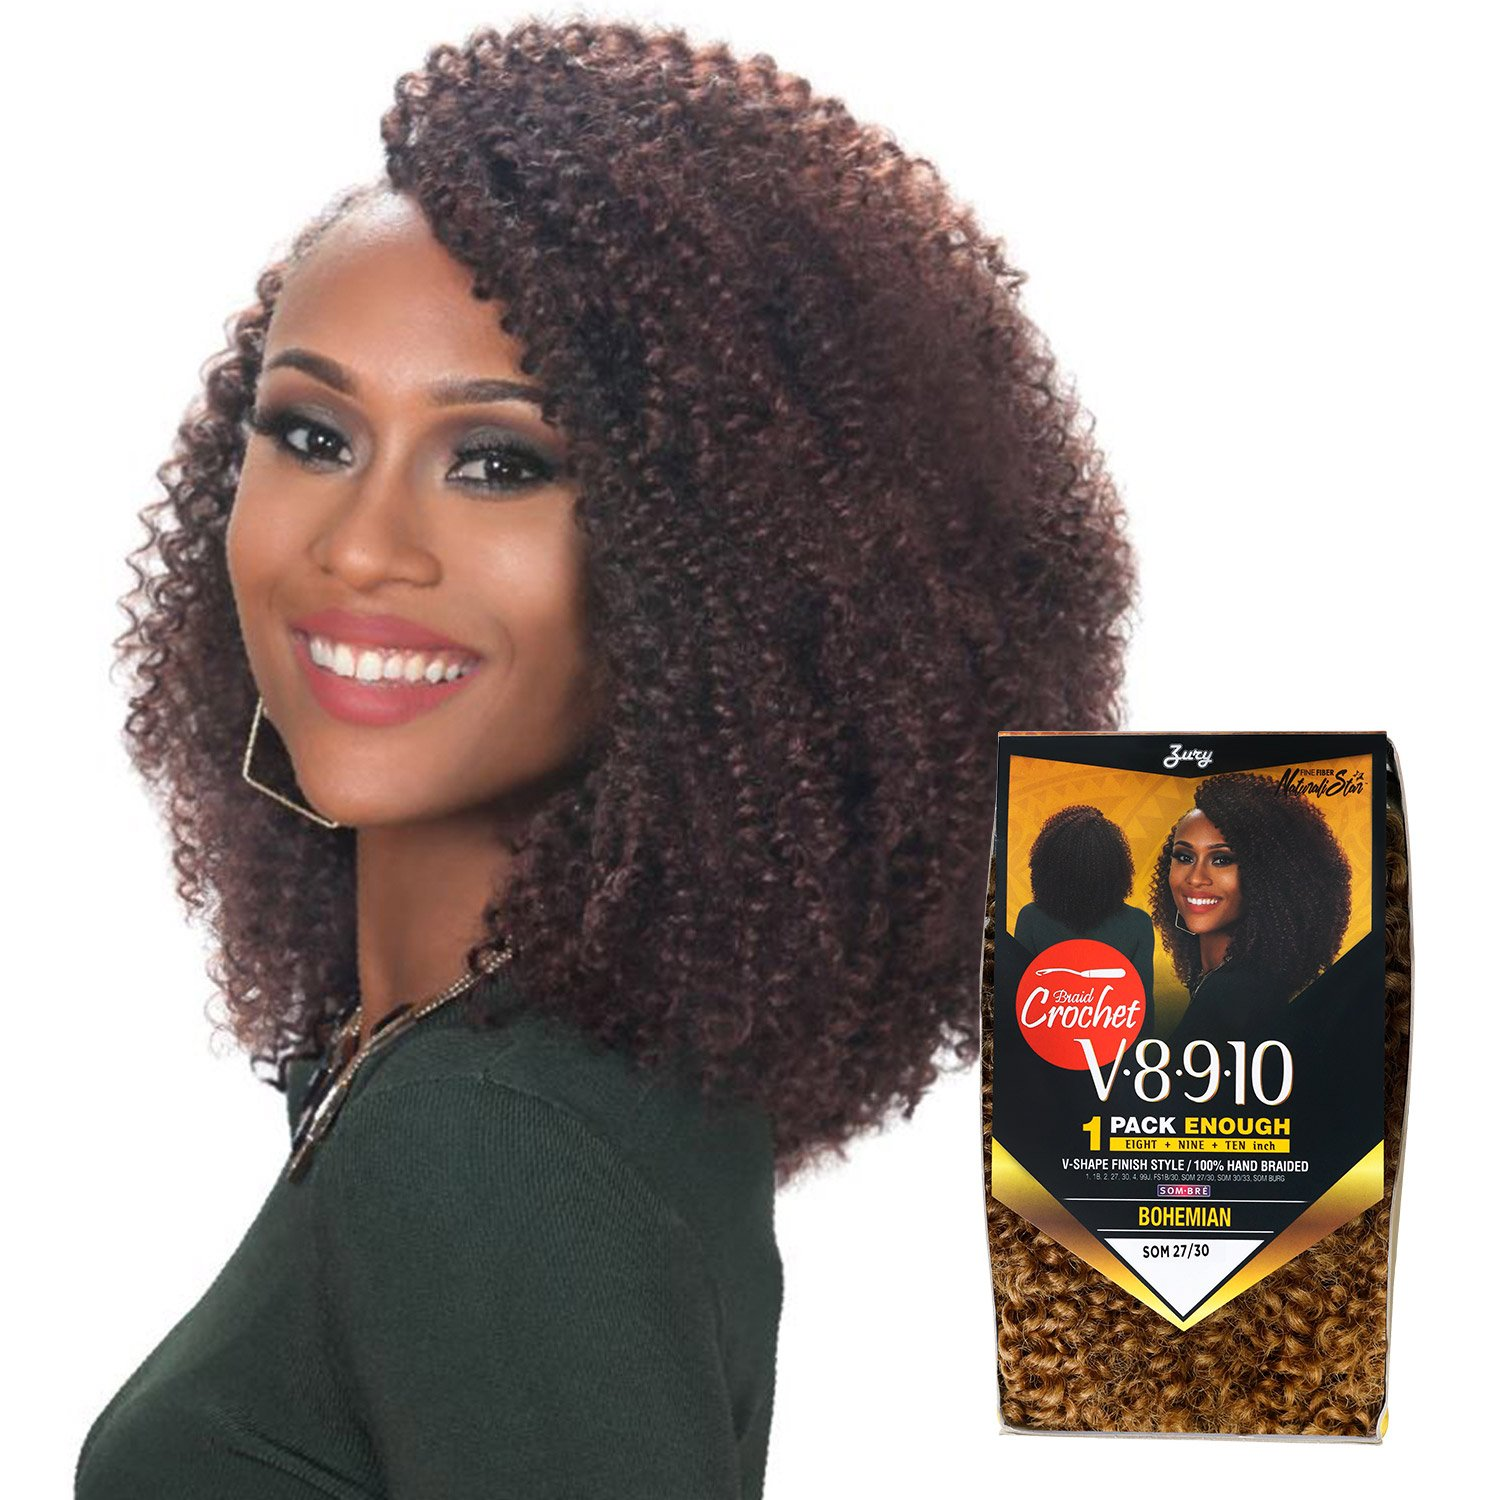 Amazoncom Royal Zury Synthetic Hair Crochet Braids V8910